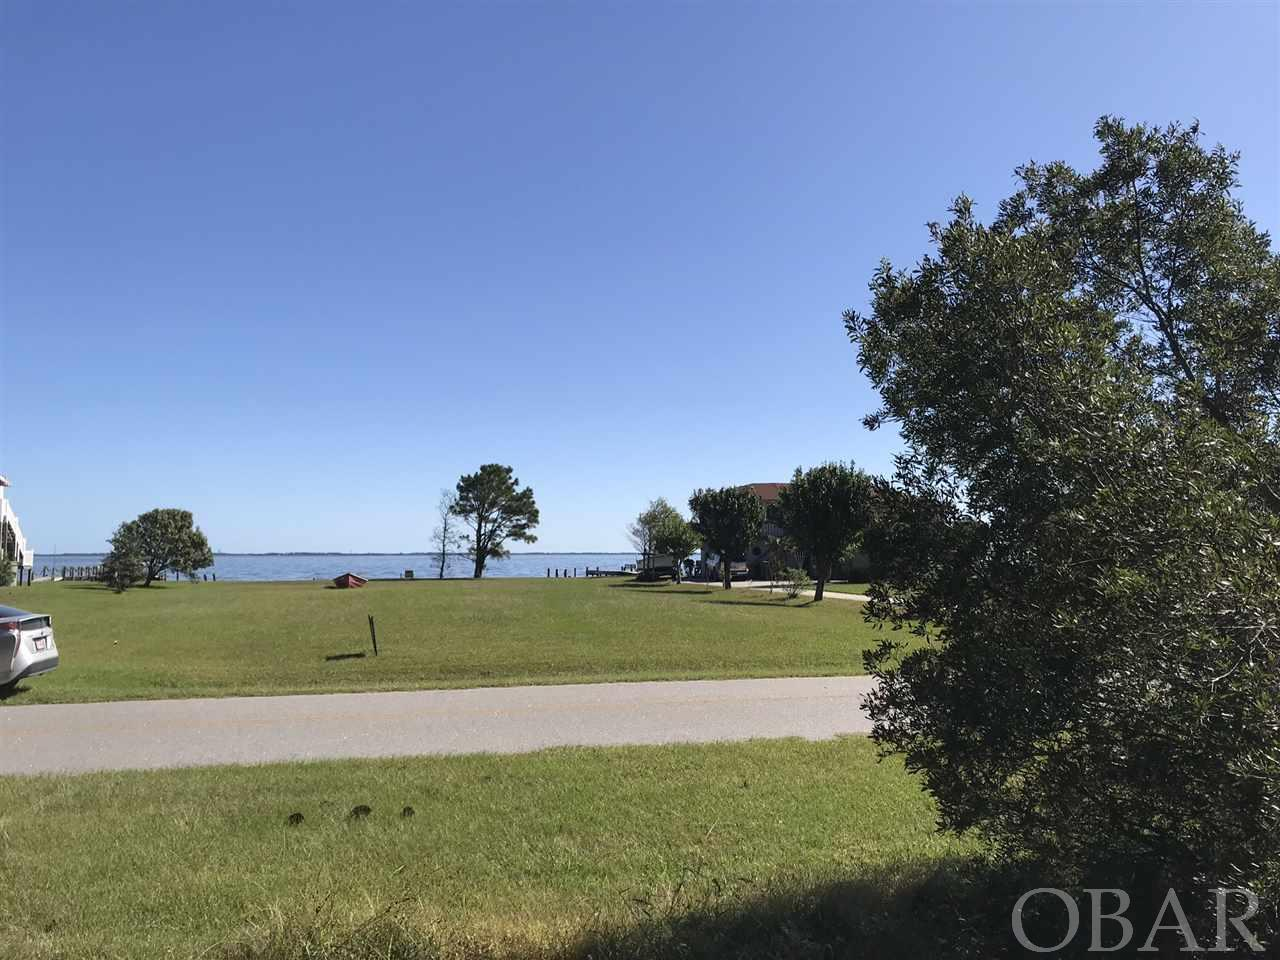 Lots/land For sale ,Price $49,900 ,689 – Outer Banks Real Estate